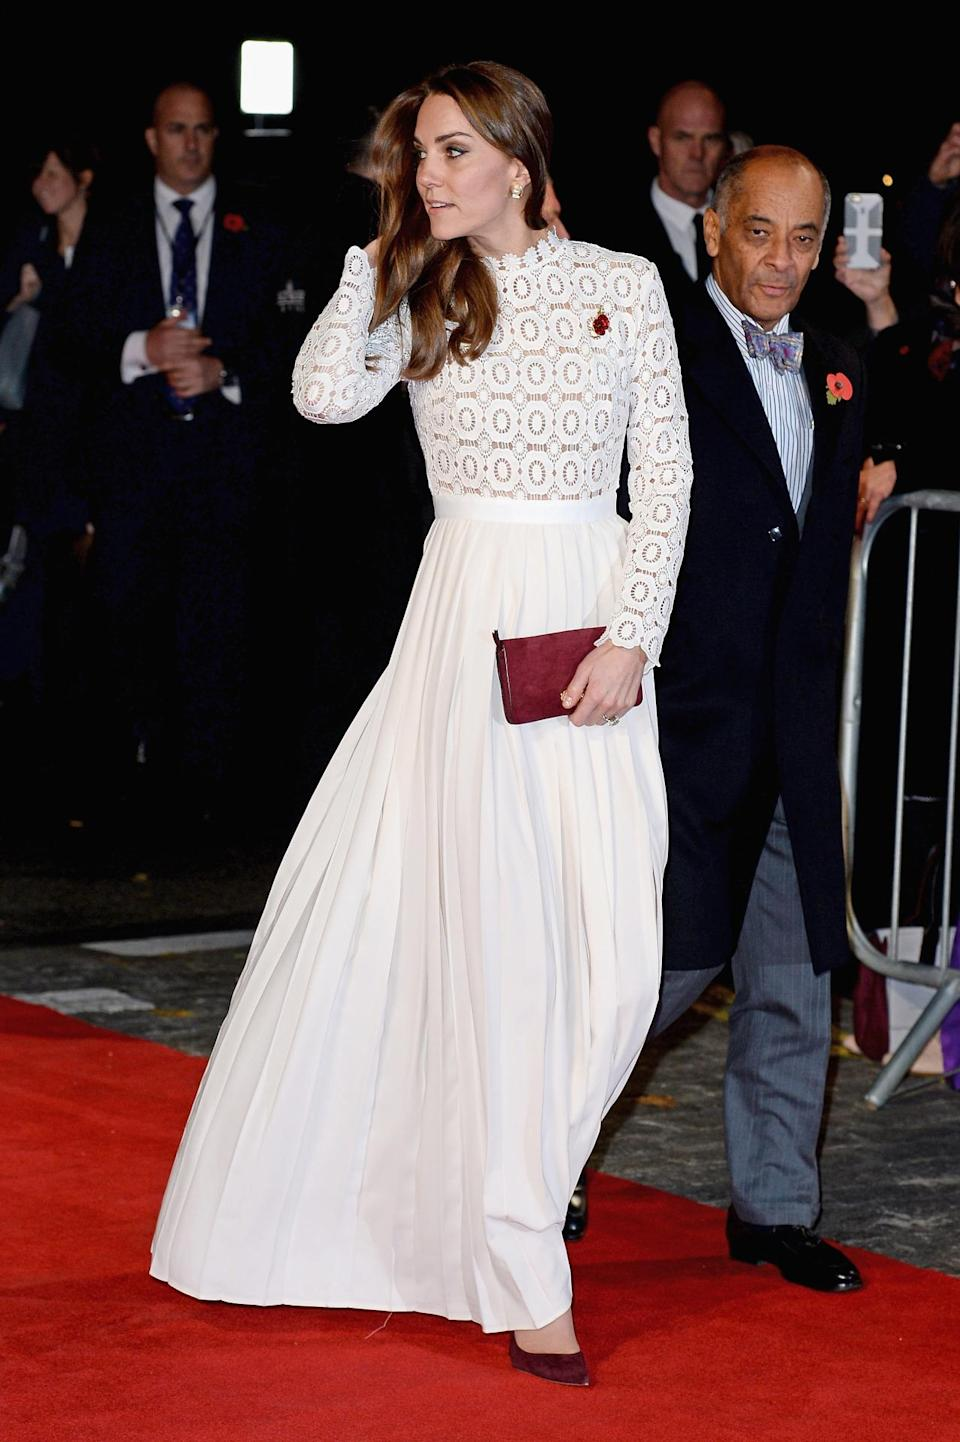 <p>At the 'Street Cat Named Bob' premiere, the Duchess turned heads in her first Self Portrait dress - the cult contemporary label that's secured a place in almost every celebrity's wardrobe over the past few years. The floor-sweeping number boasts a lace bodice and a thigh-high slit. </p><p><i>[Photo: Getty]</i></p>